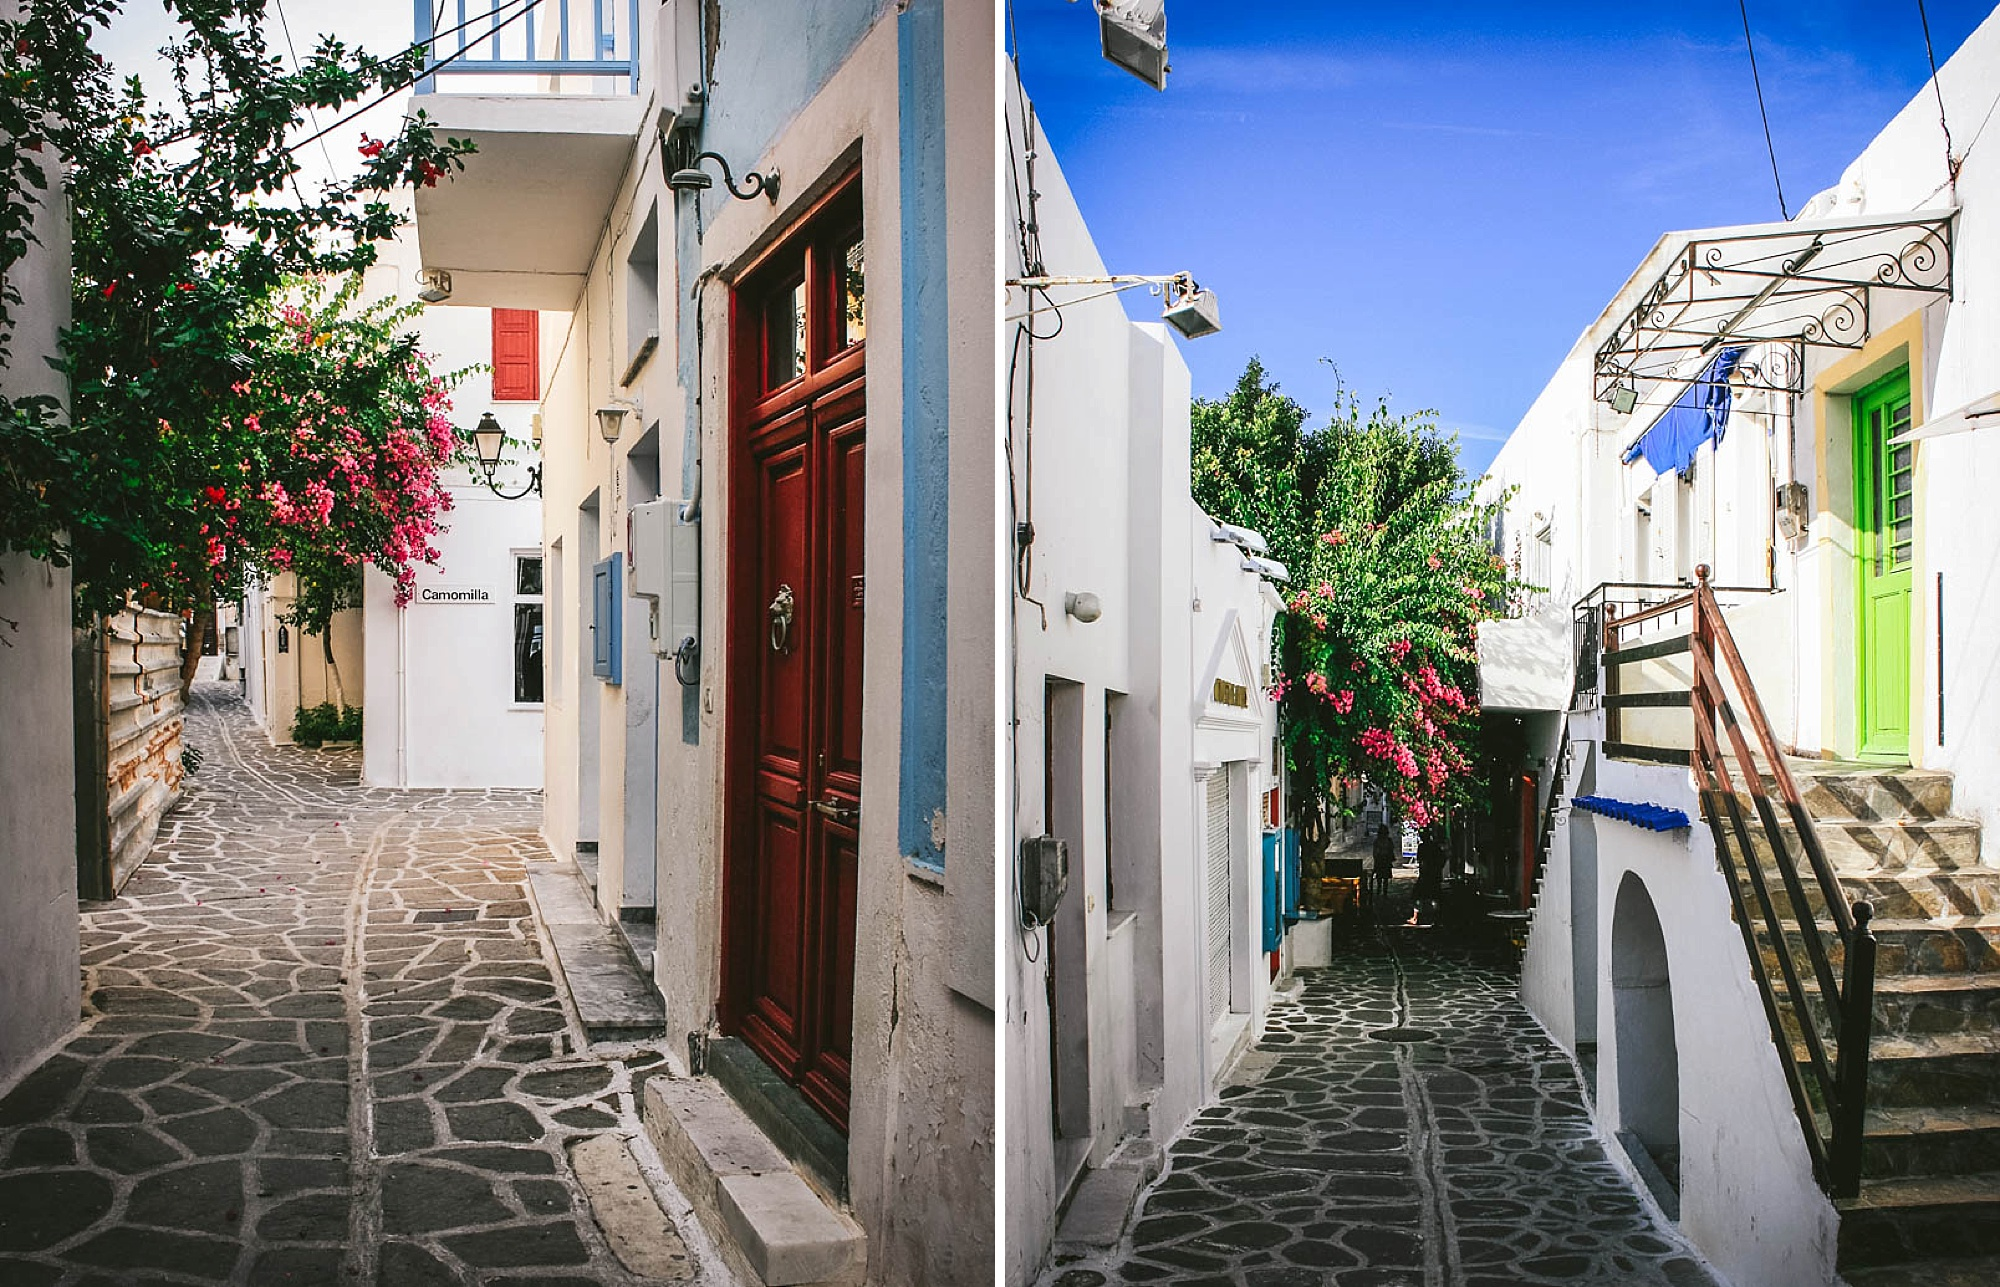 STREETS ON PAROS ISLAND. BY LEONIE WISE